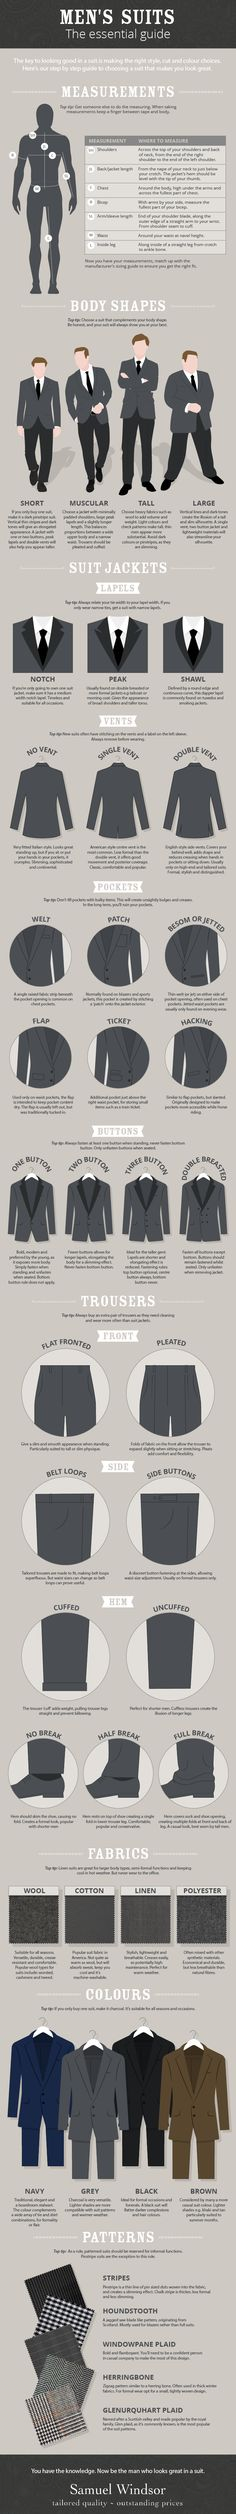 Mens Suits - The Essential Guide